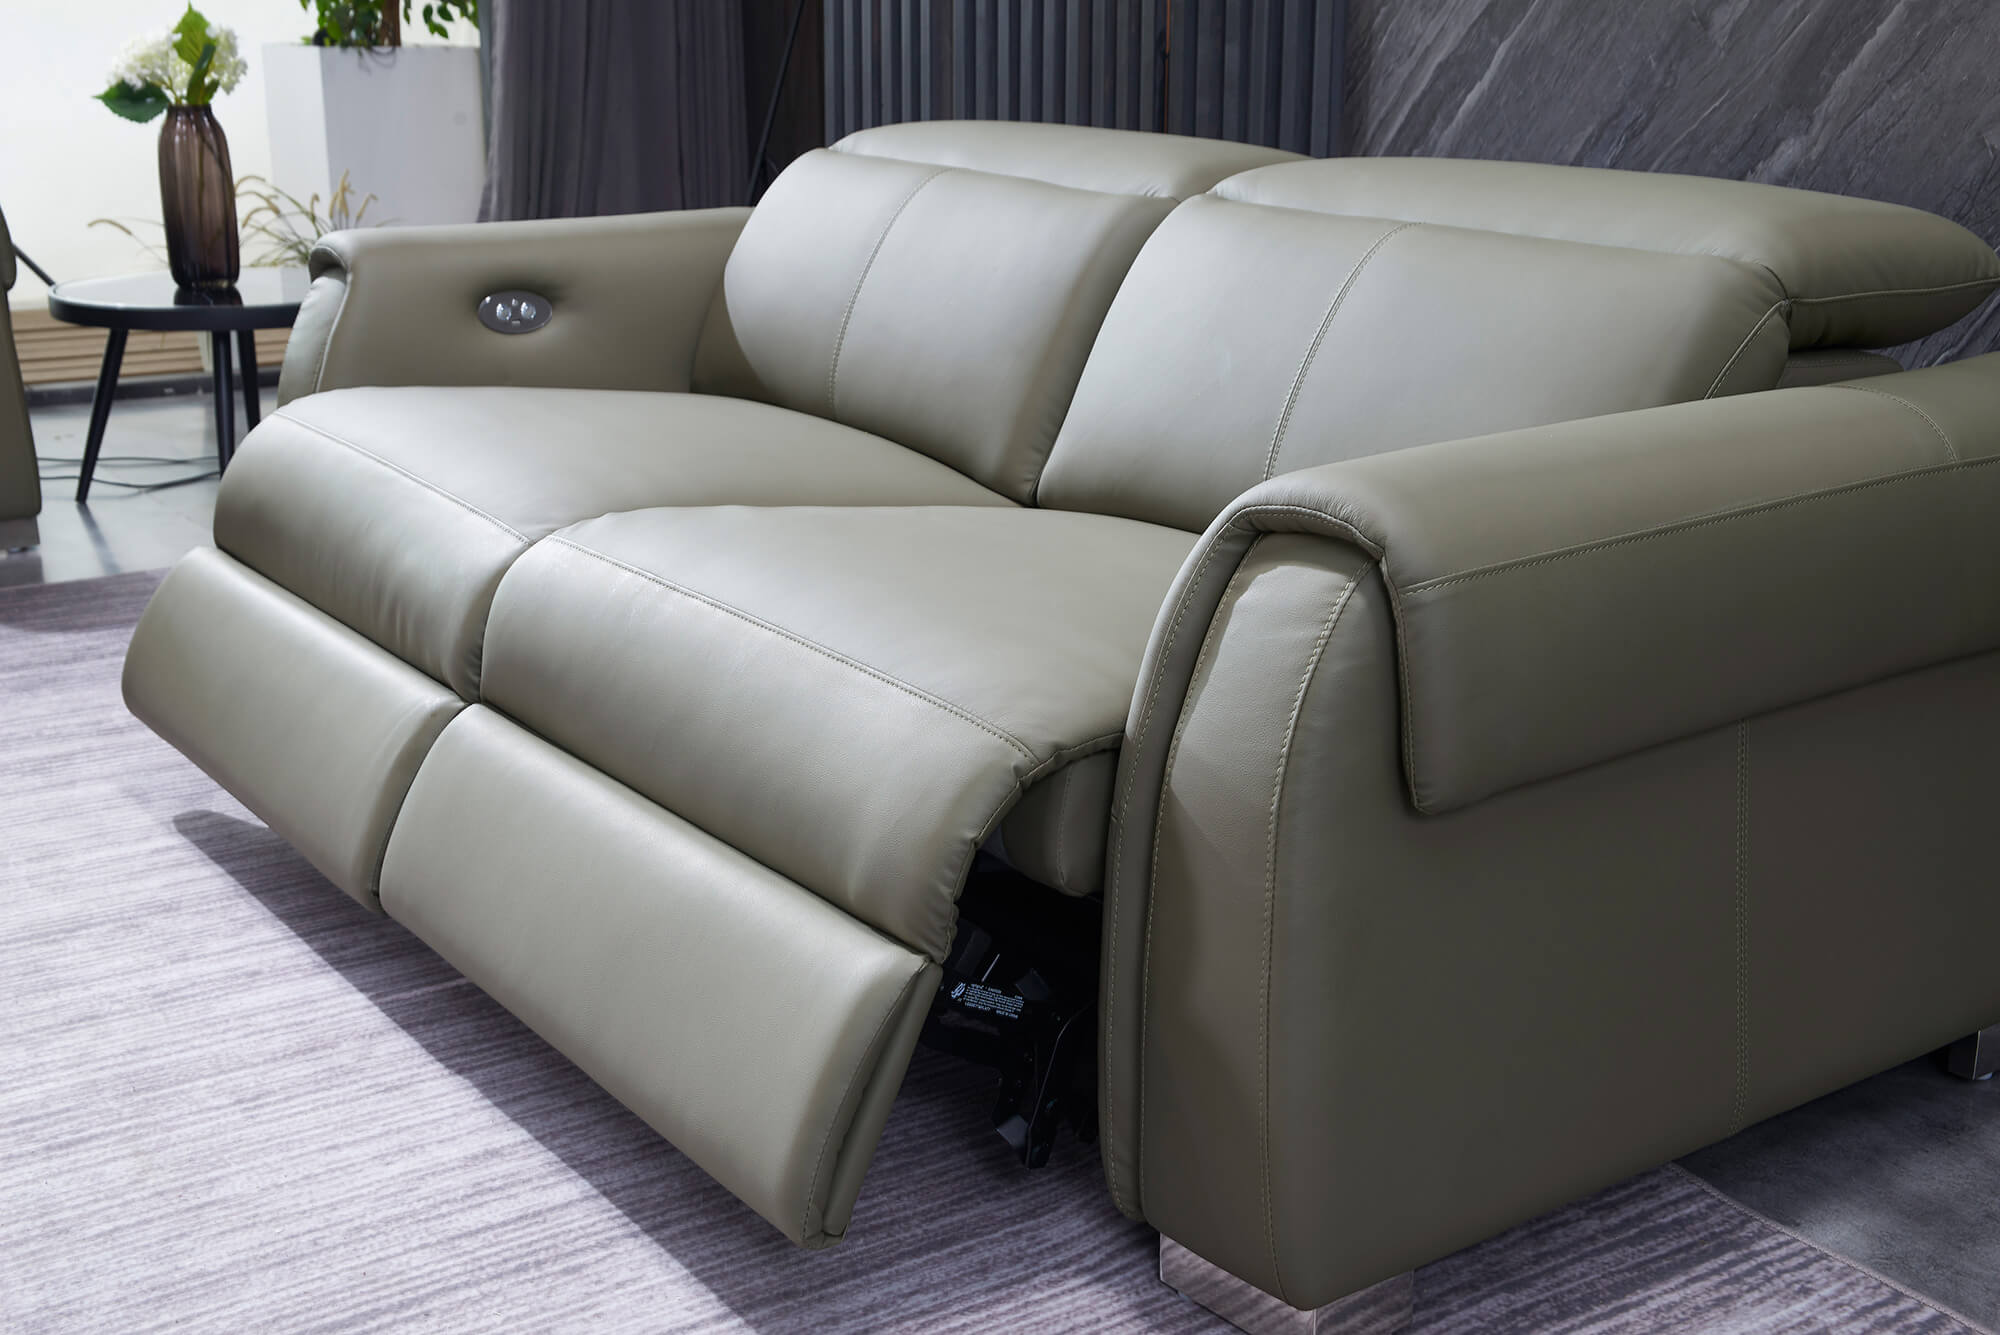 olive leather electric recliner sofa 2 seater reclined headrest back